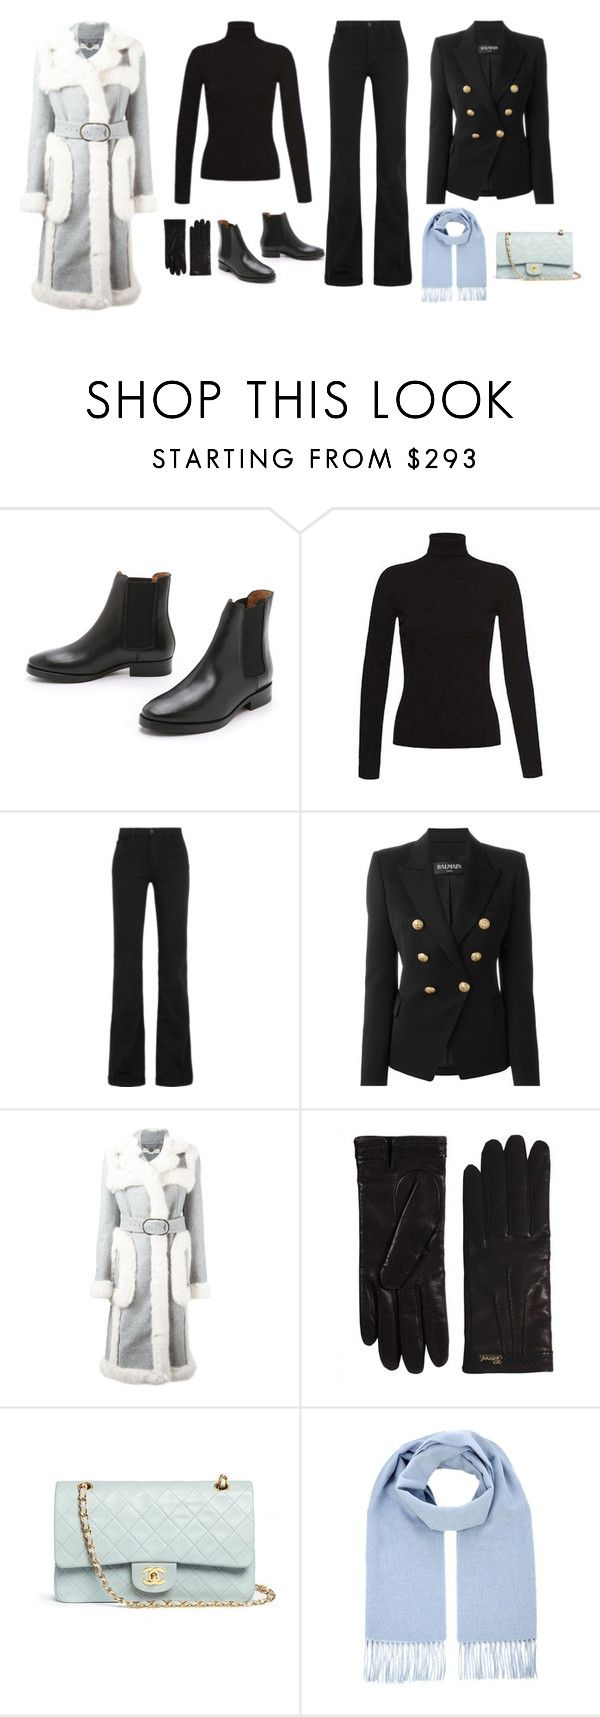 """WINTER OUTFIT #1"" by ebvx on Polyvore featuring Acne Studios, J Brand, Balmain, STELLA McCARTNEY, Gucci, Chanel and Winter"